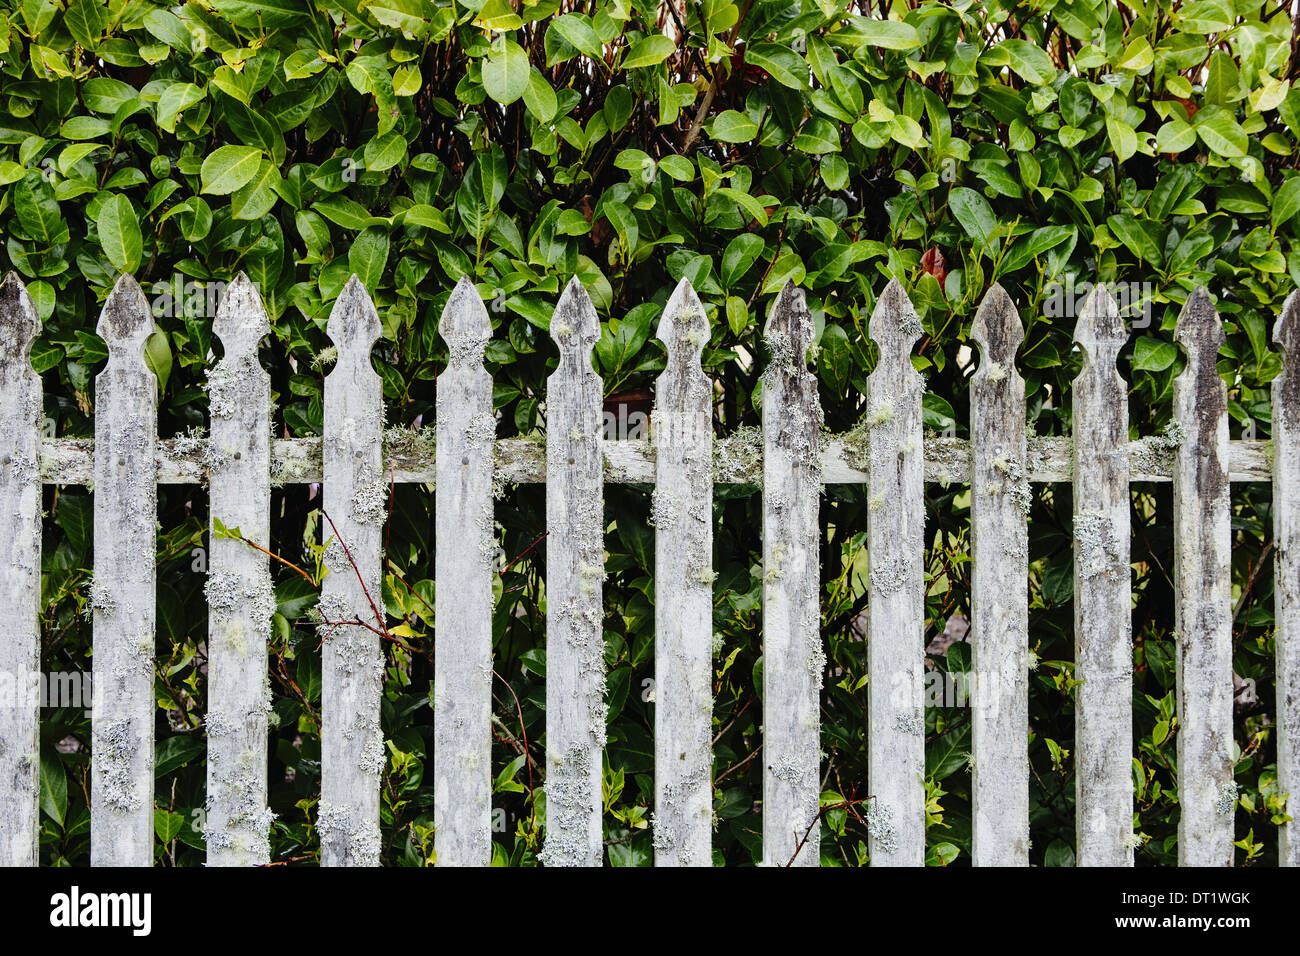 Old wooden picket fence imgkid the image kid